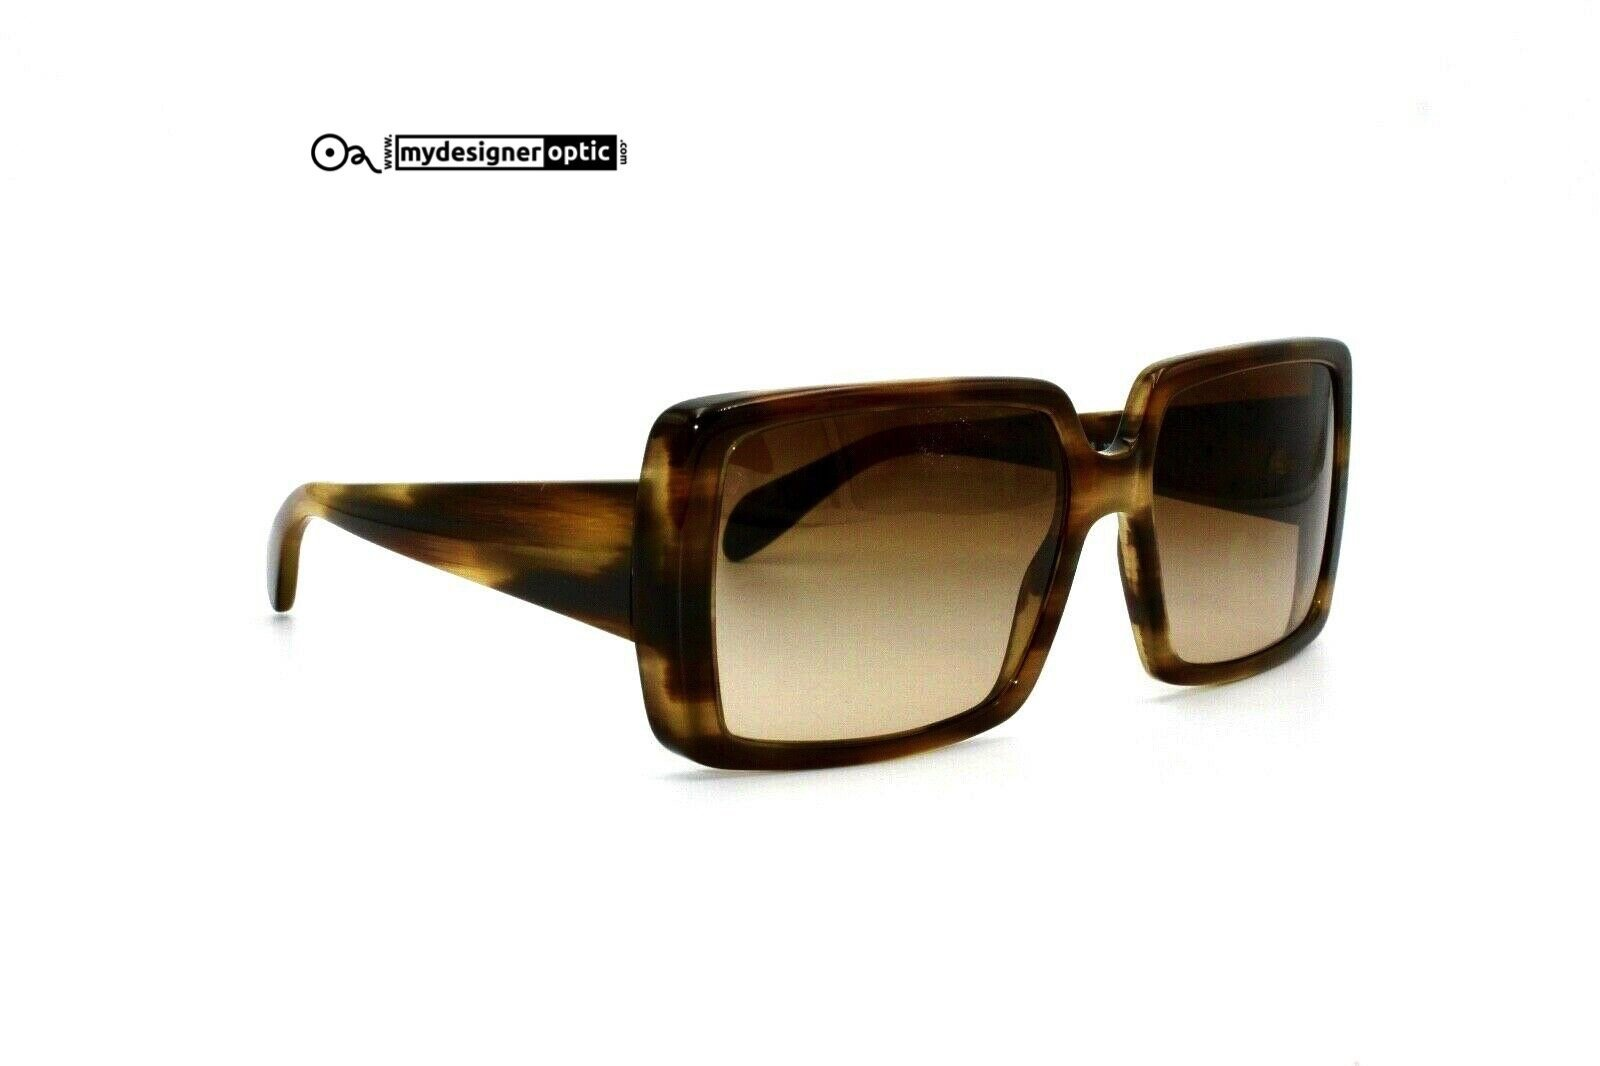 Oliver Peoples Sunglasses OV 5113-S 1051/13 Rees 58 16 135 3N Hand Made in Italy - Mydesigneroptic